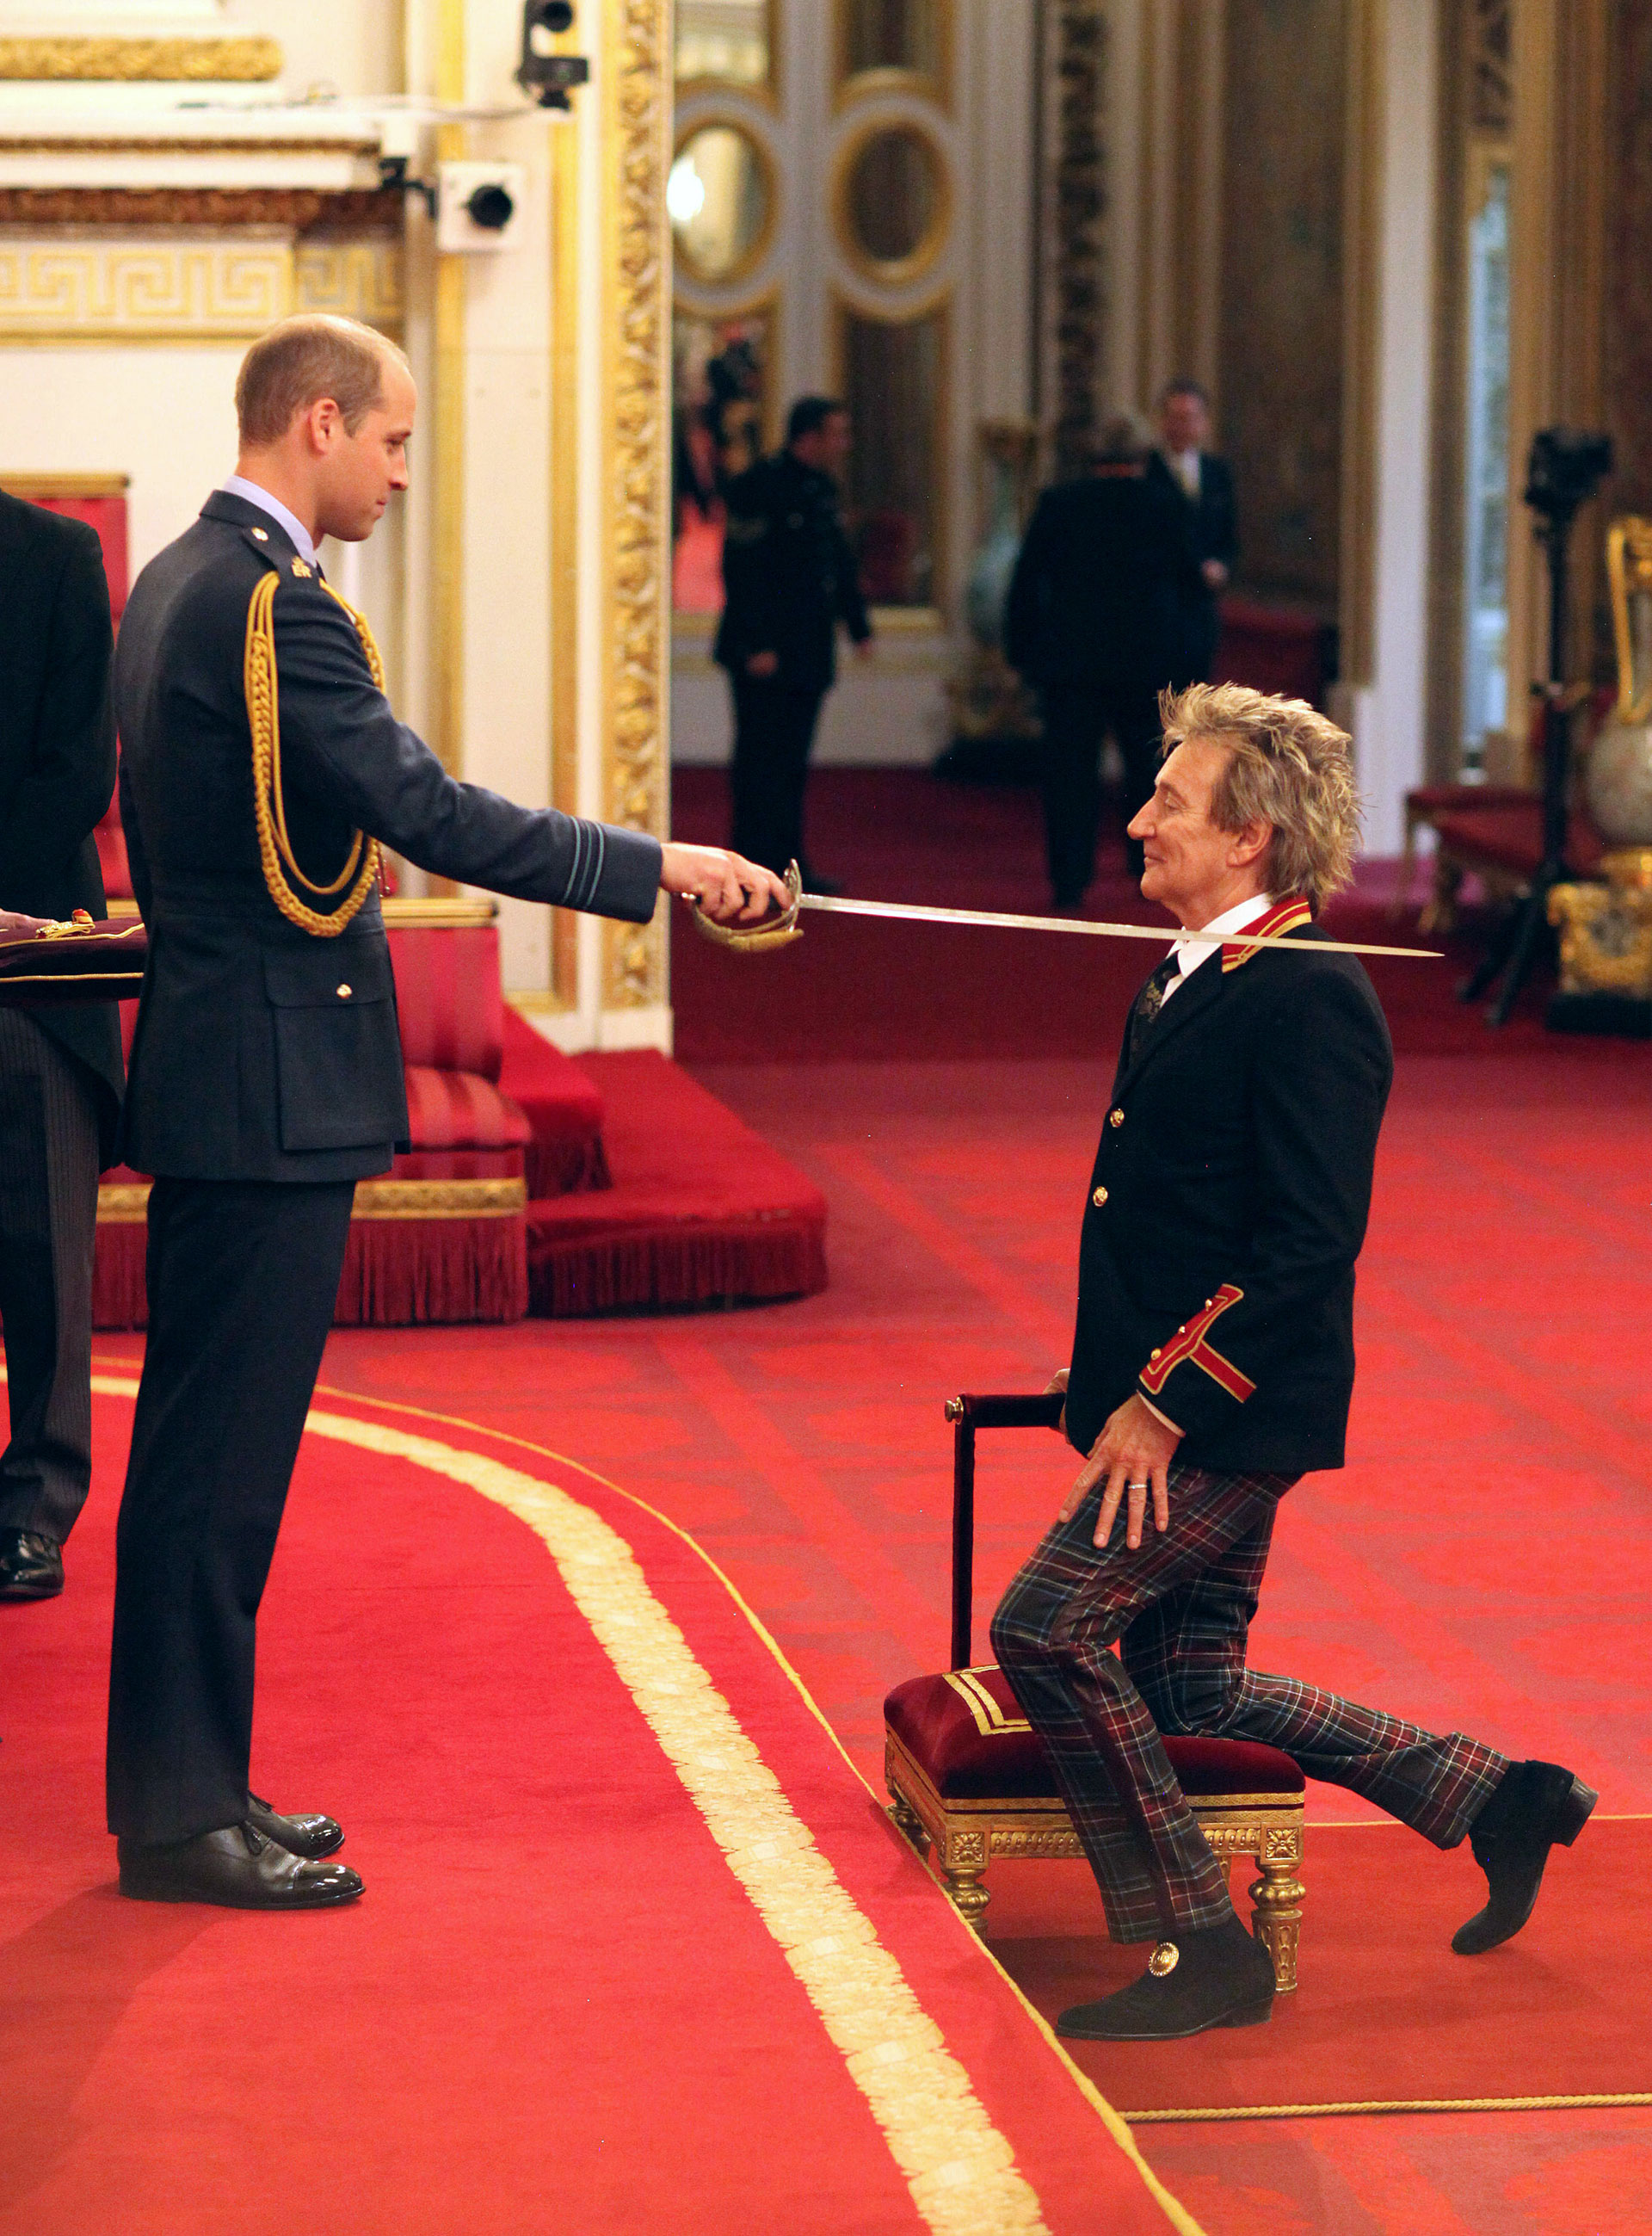 Rod Stewart fue nombrado Sir por el príncipe William en una majestuosa ceremonia en el Buckingham Palace